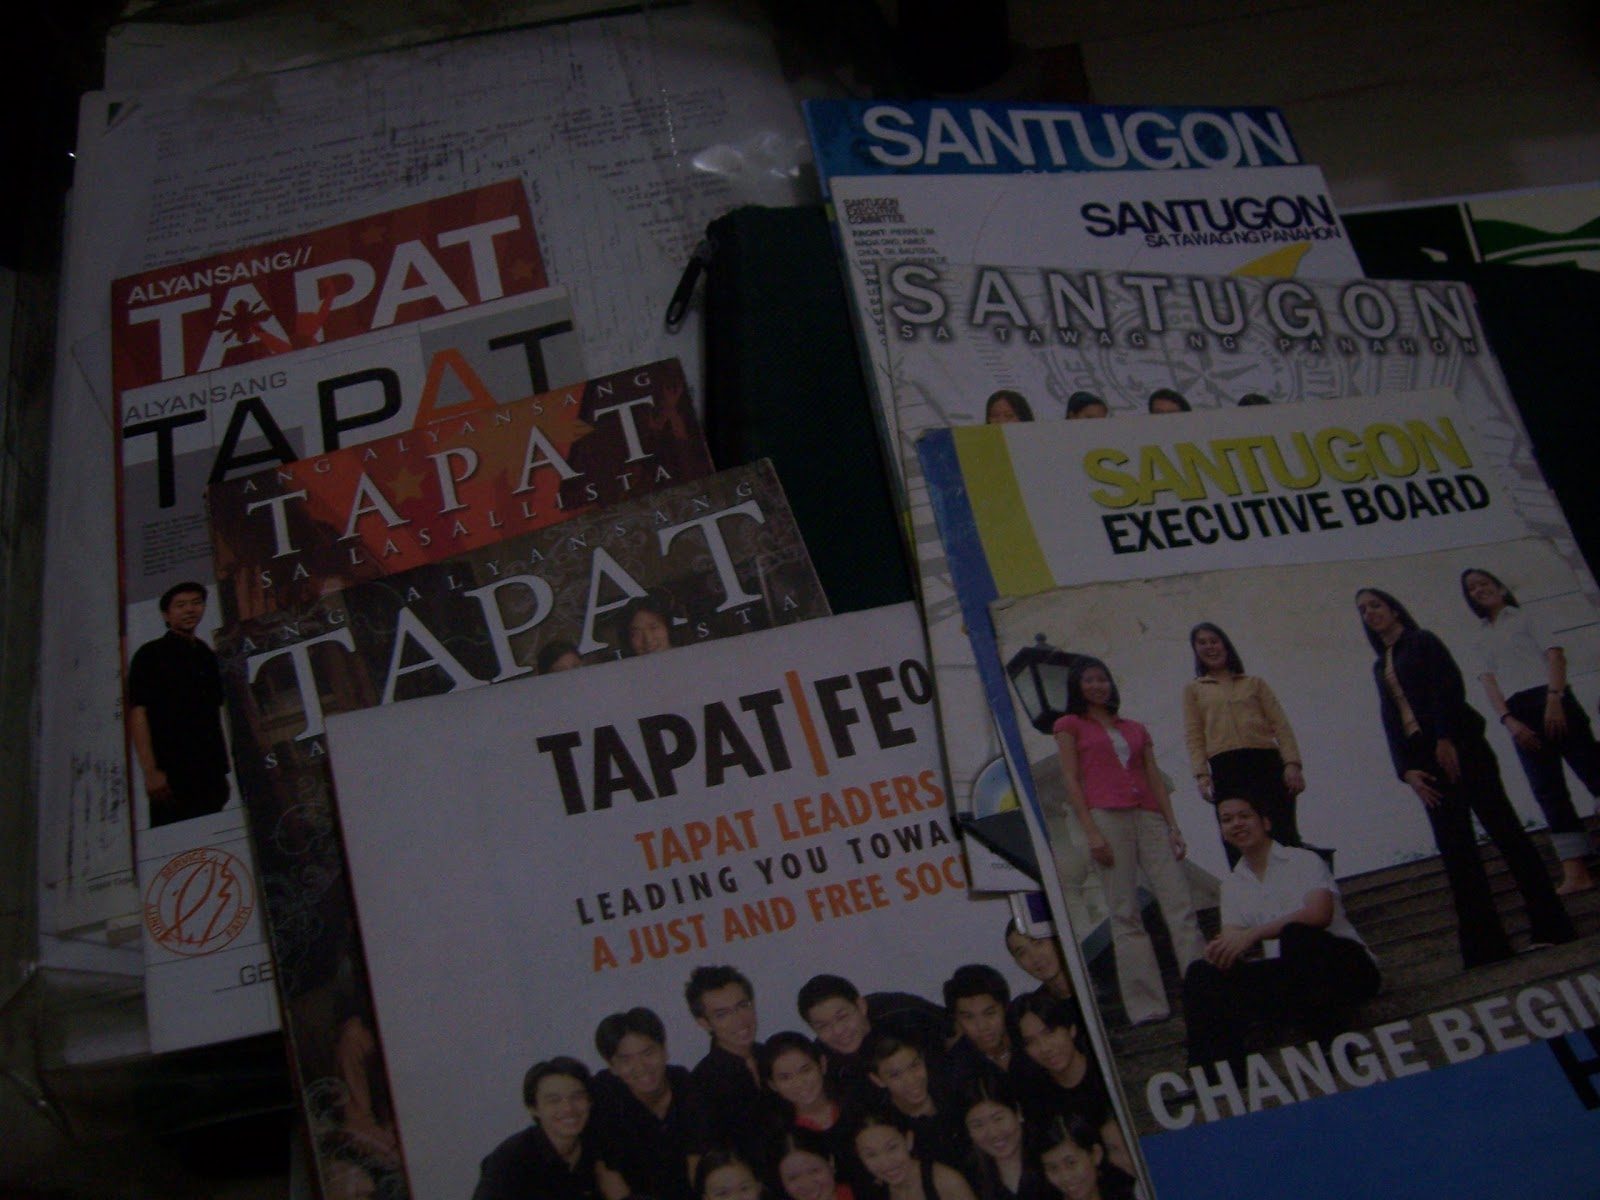 I collected four years' worth of campaign materials from both parties. The last batch - the one for the 2009 elections - came from my sister, who helped as much as possible despite not wanting to write for me. The people I met during the campaigns asked me if she'll write. She'd admit she's more of a Tapat person.